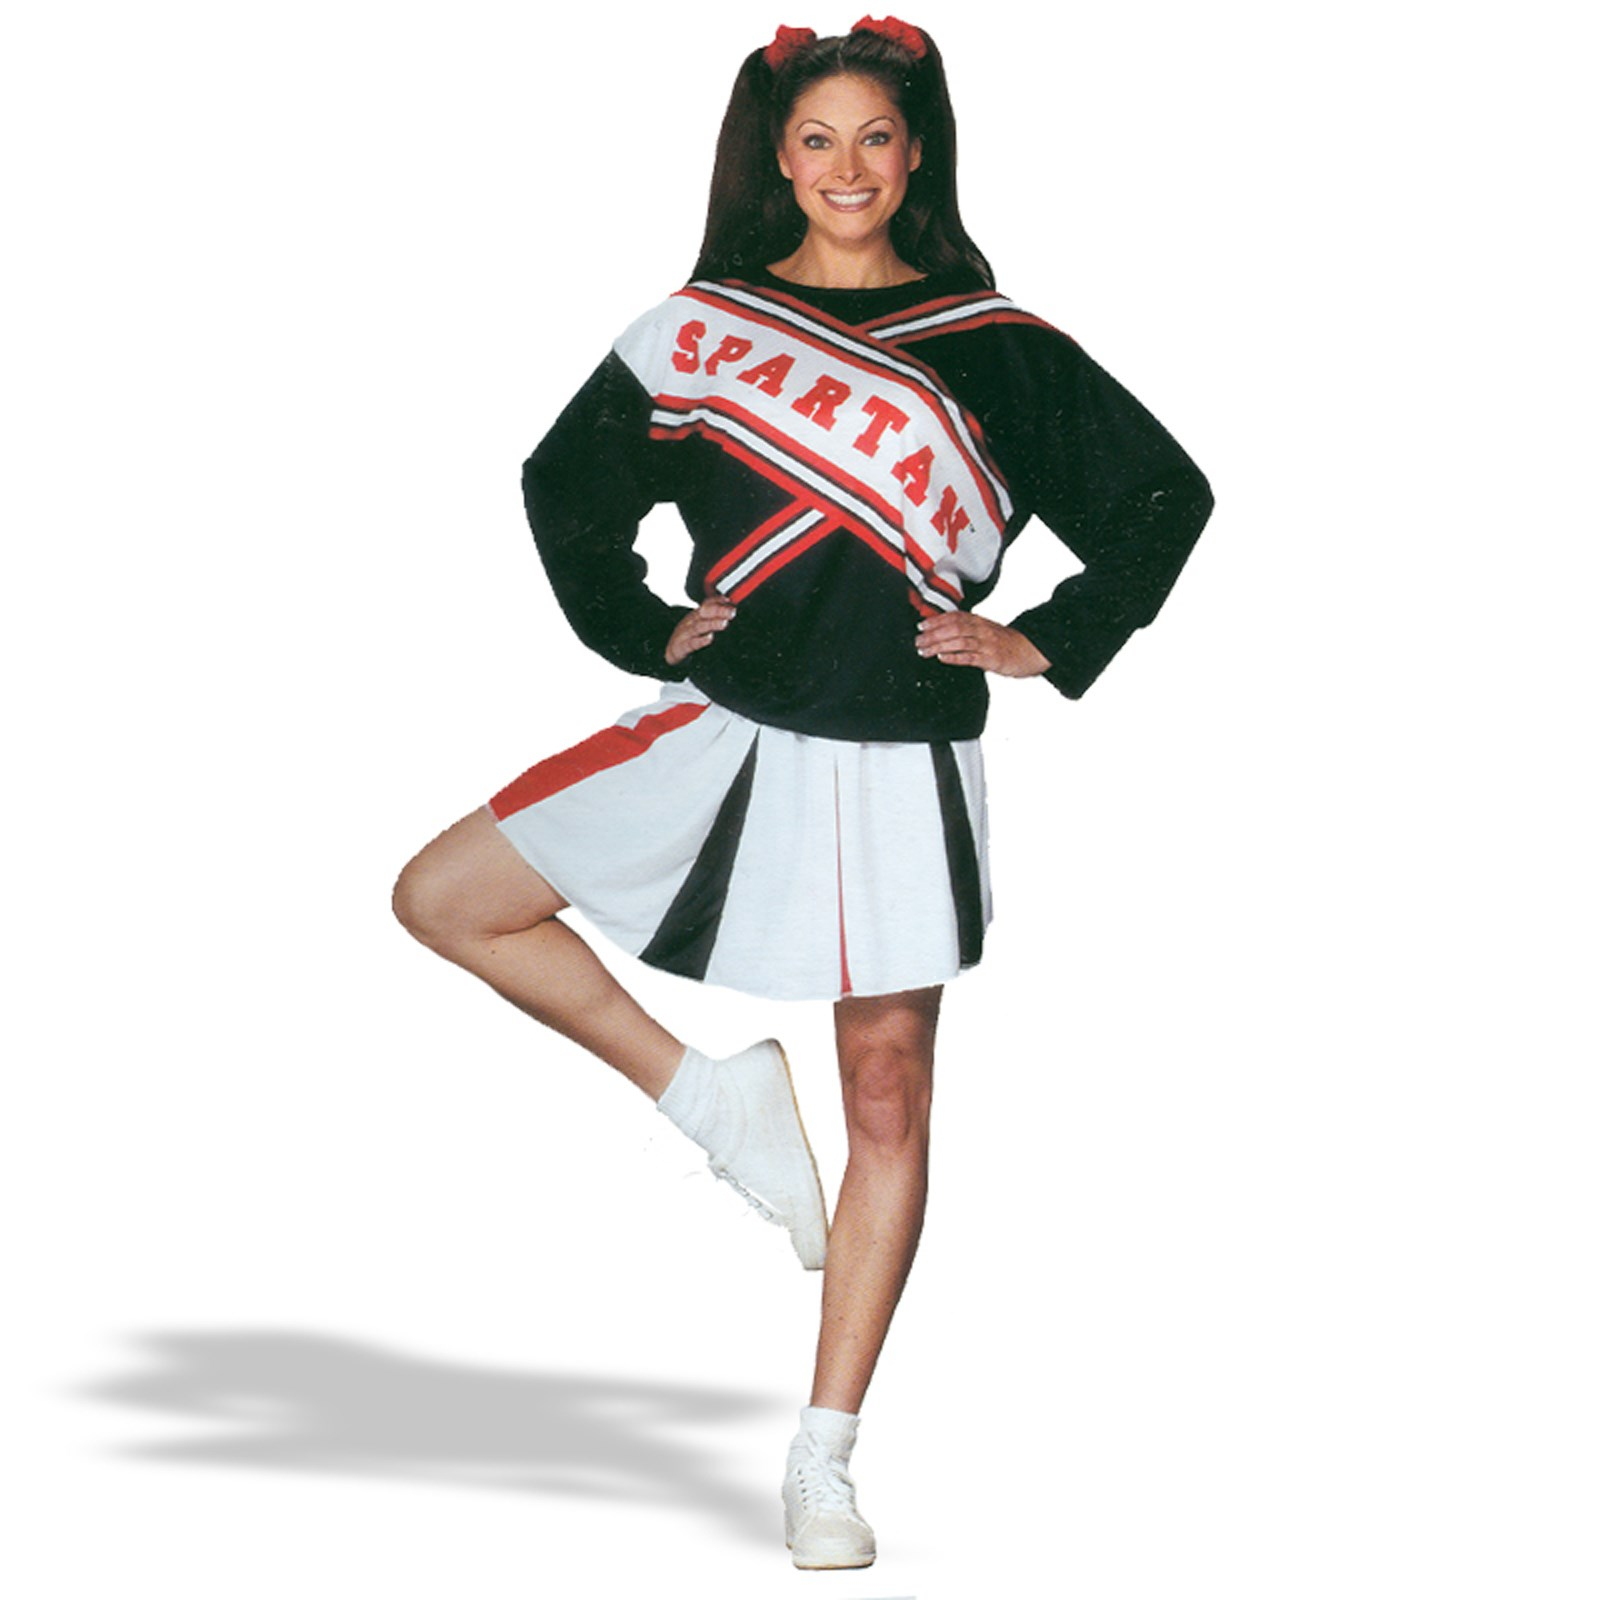 SNL Spartan Cheerleader Female Adult Costume